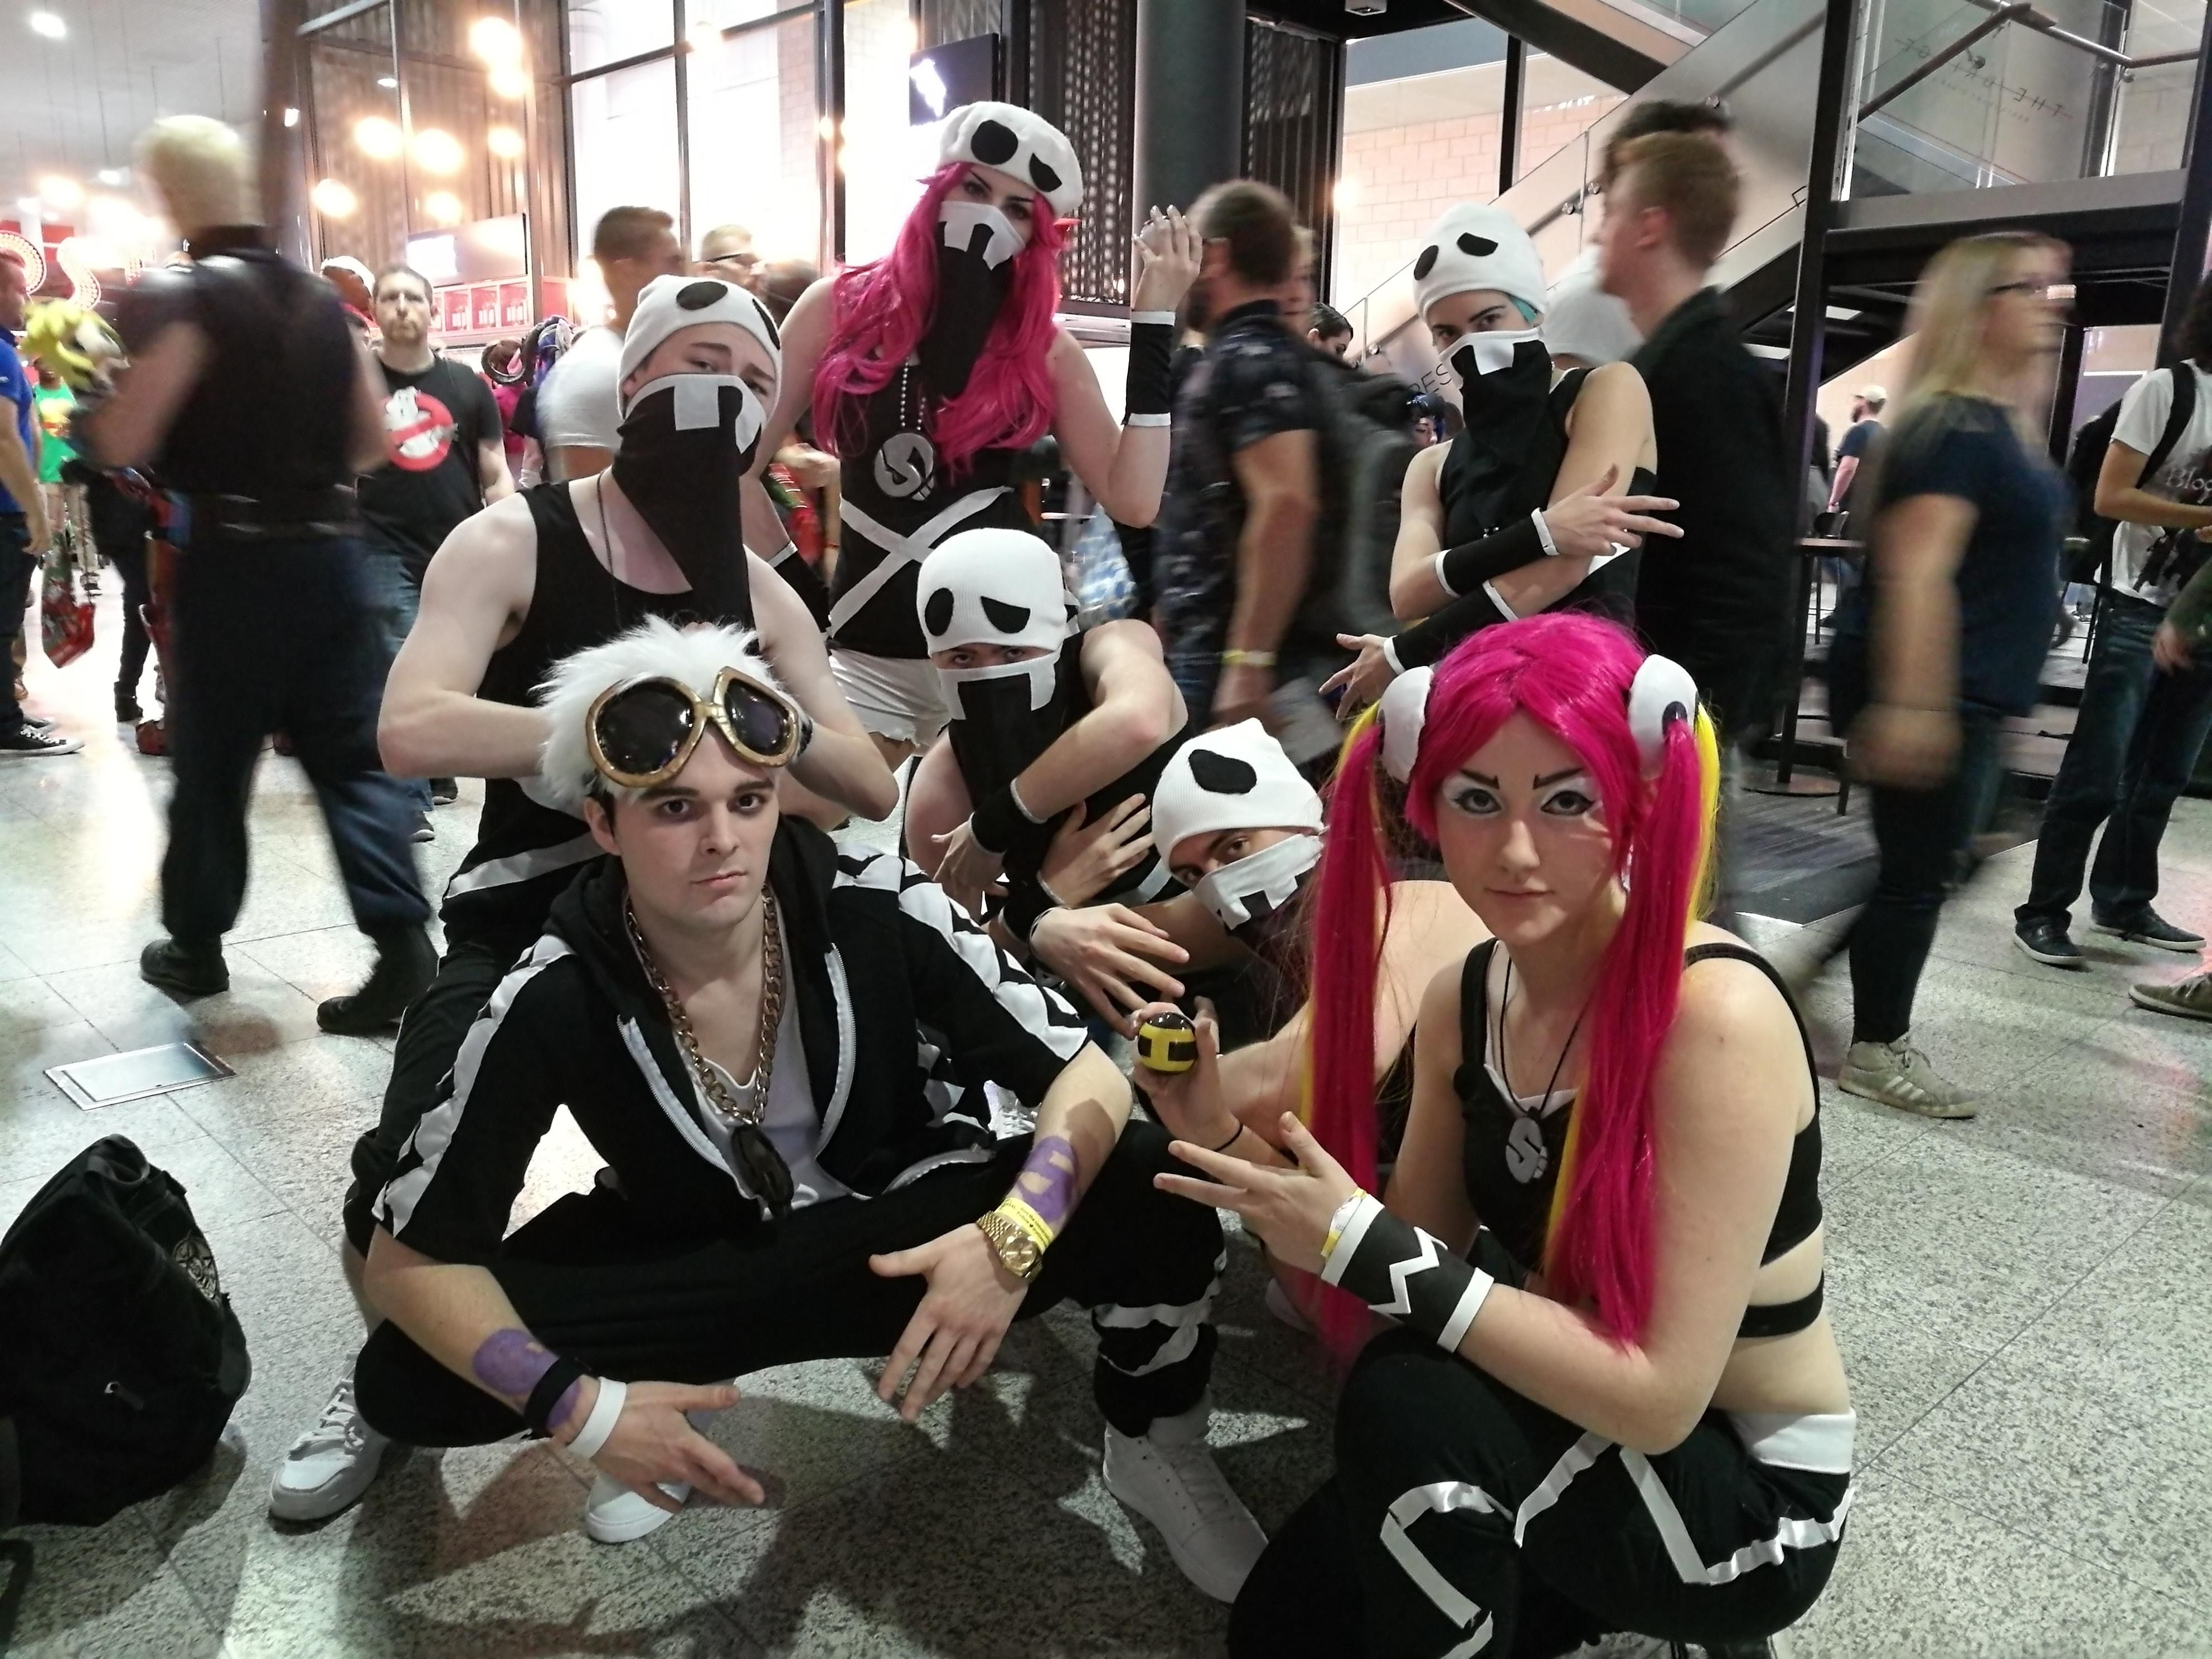 Our group Team Skull cosplay for London MCM Expo!